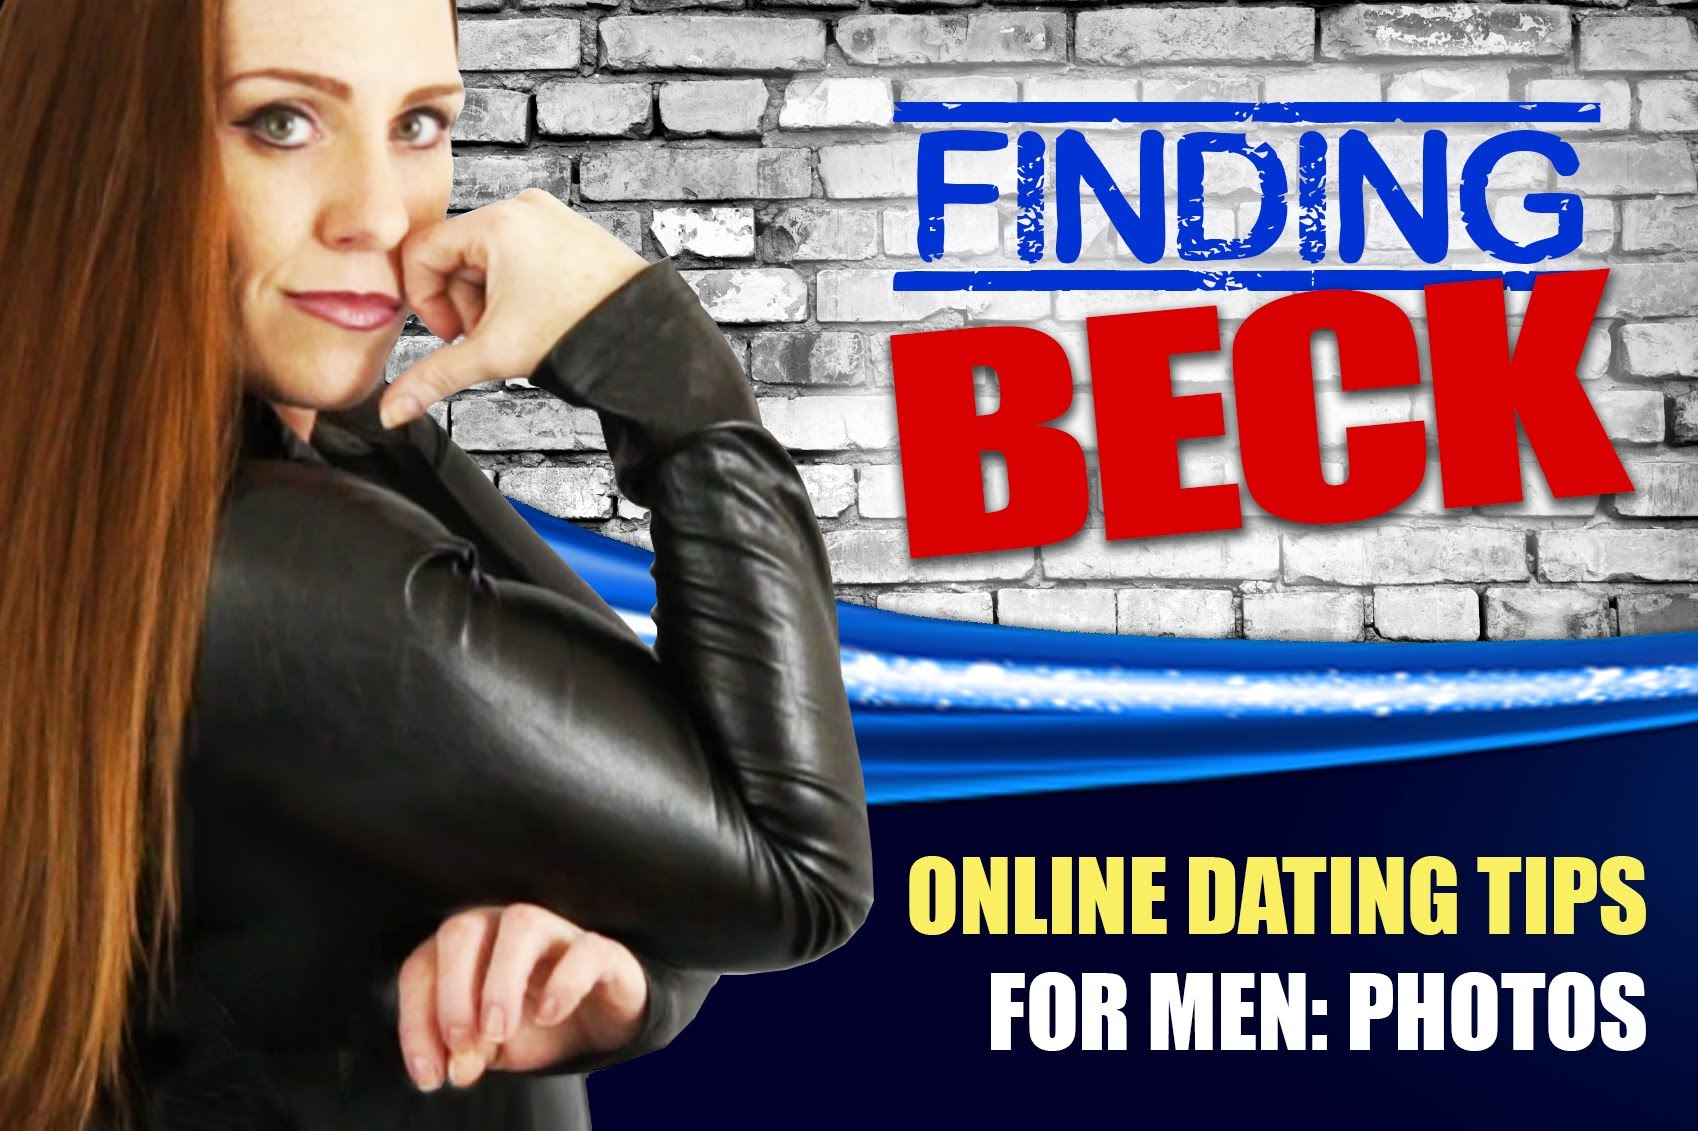 Keep your safety a priority with online dating